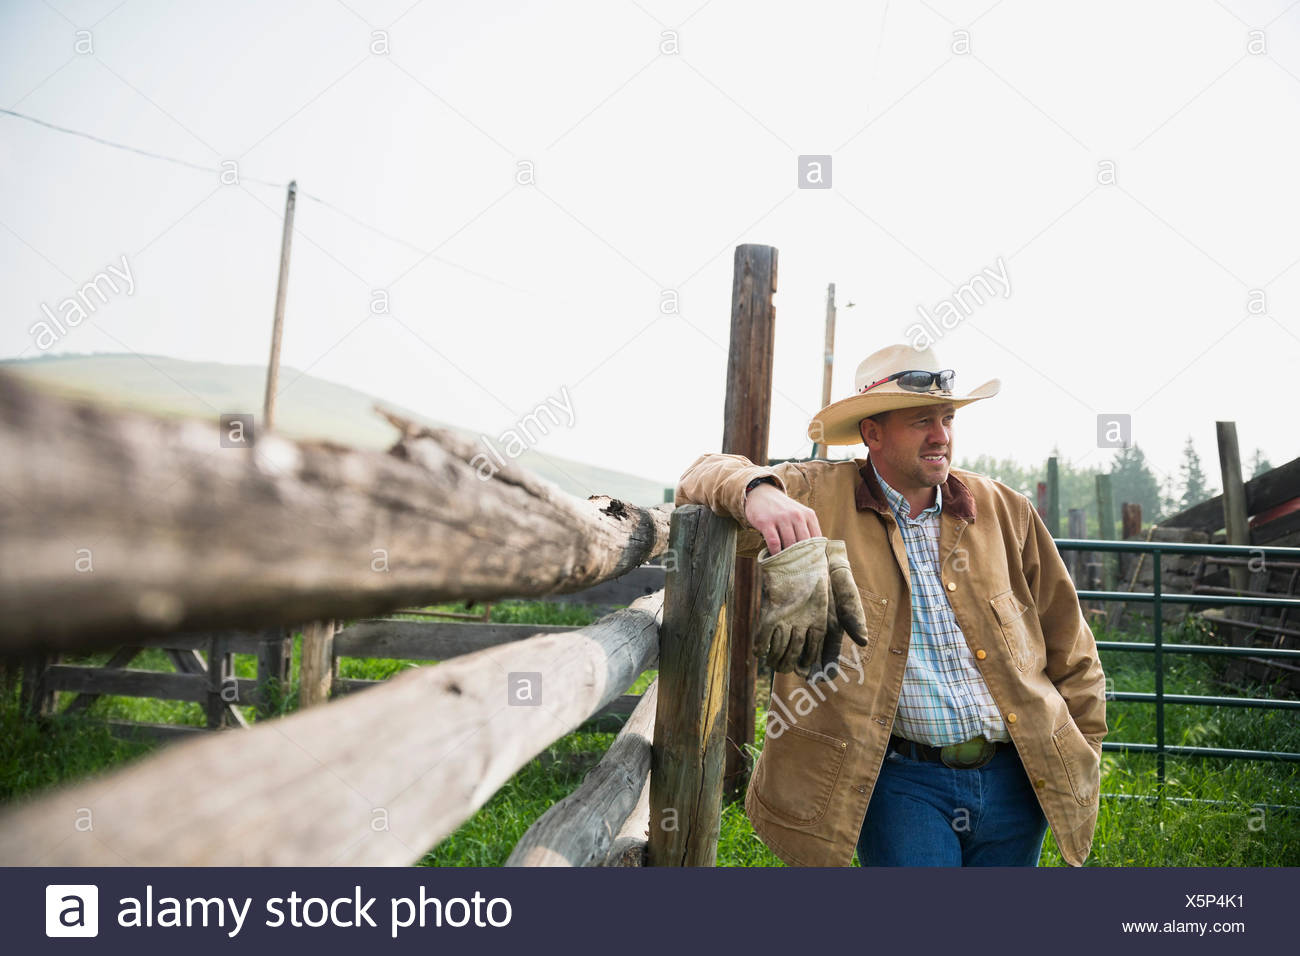 Rancher leaning on pasture fence - Stock Image